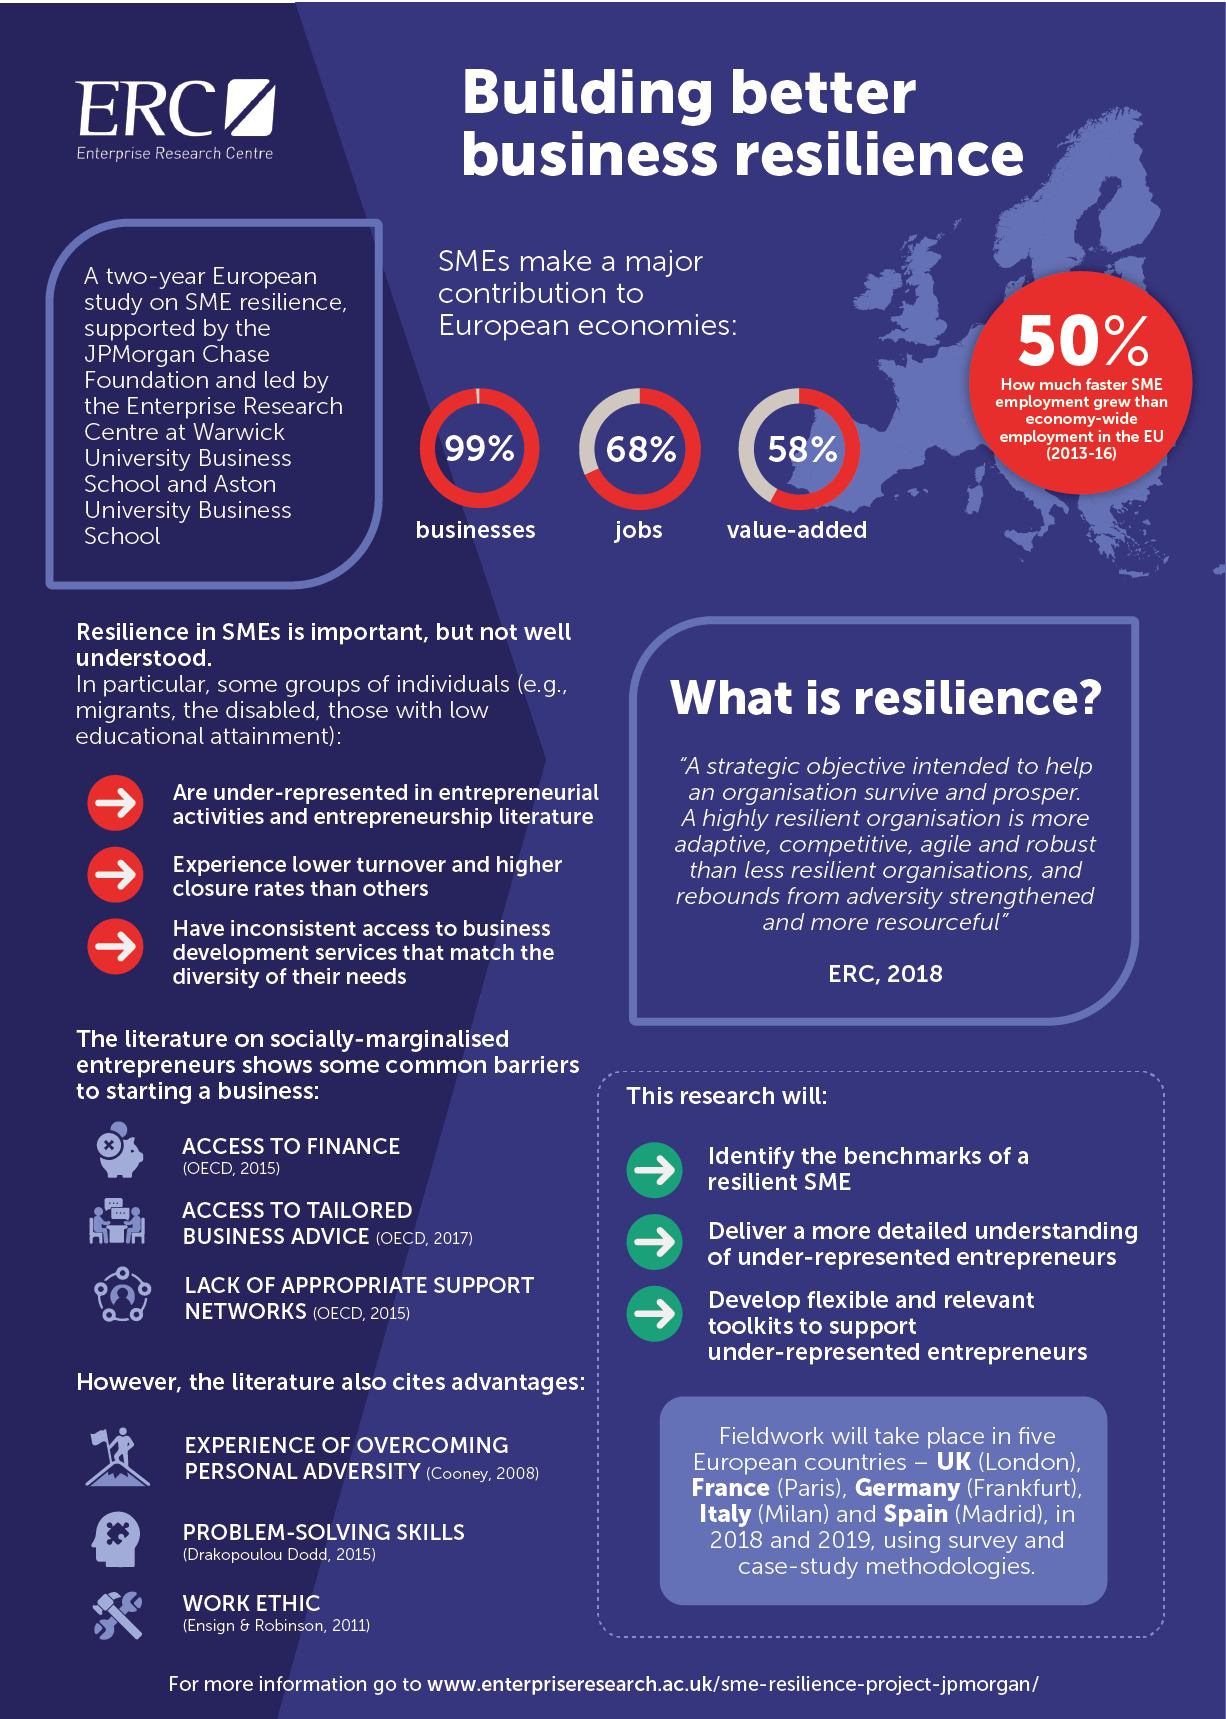 Building Better Business Resilience – JPMorgan Chase Foundation